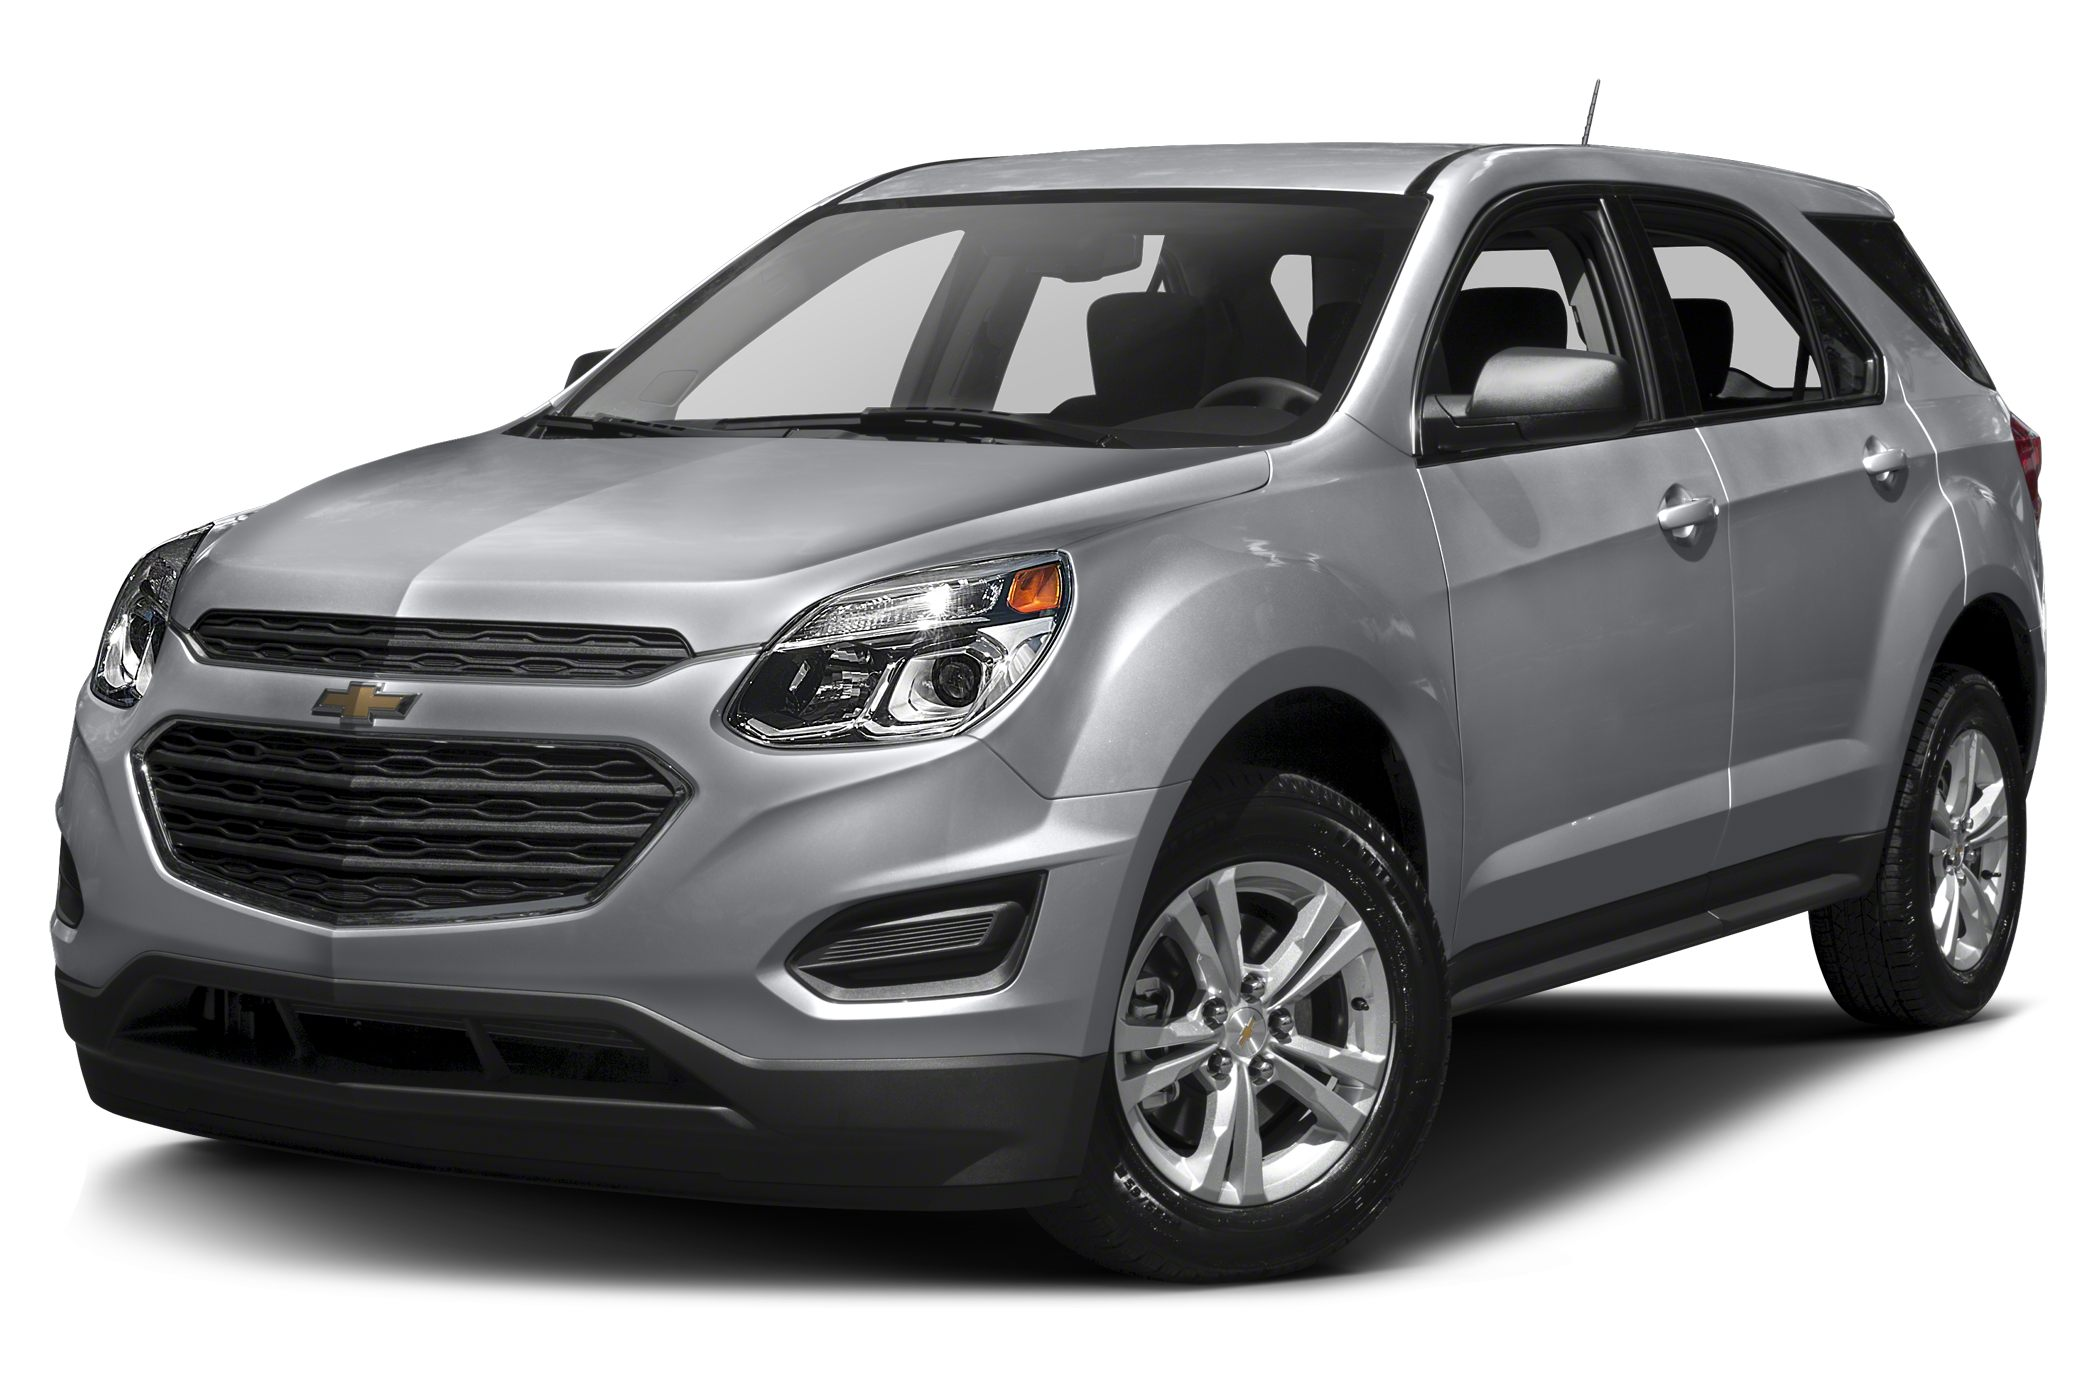 2017 jeep compass vs. 2017 chevrolet equinox | dave warren